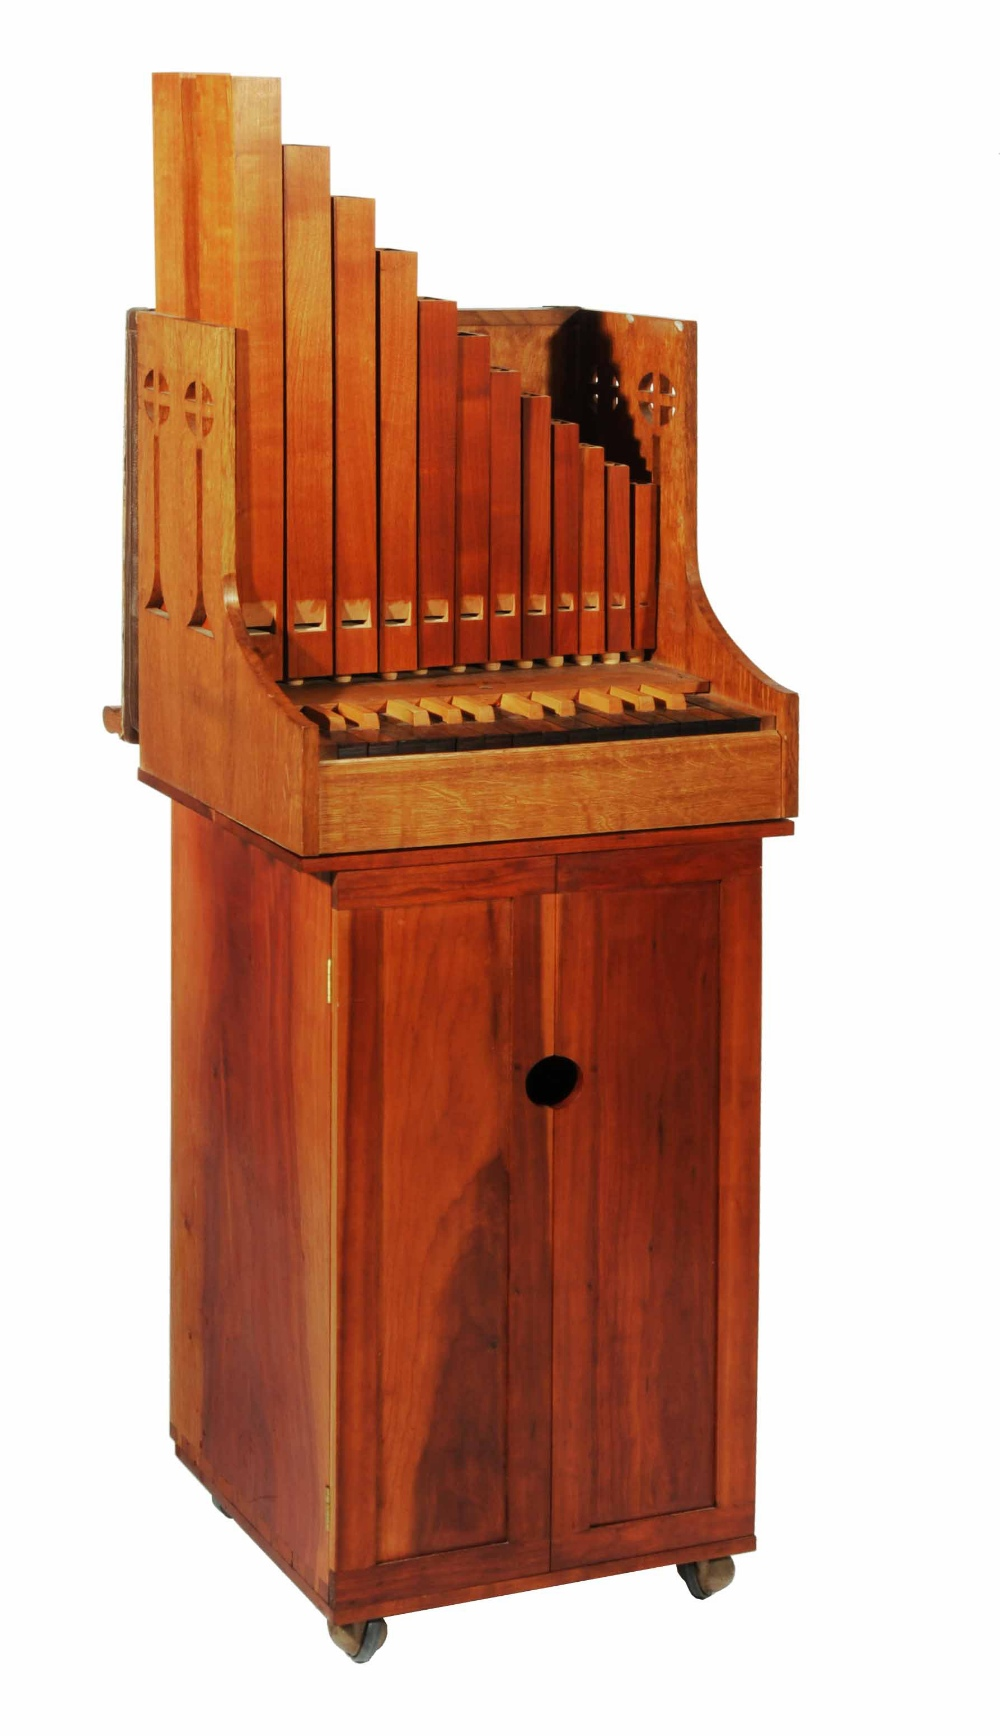 A PORTATIVE ORGAN AND STAND made by Donald Gill, the organ of traditional form with twenty five